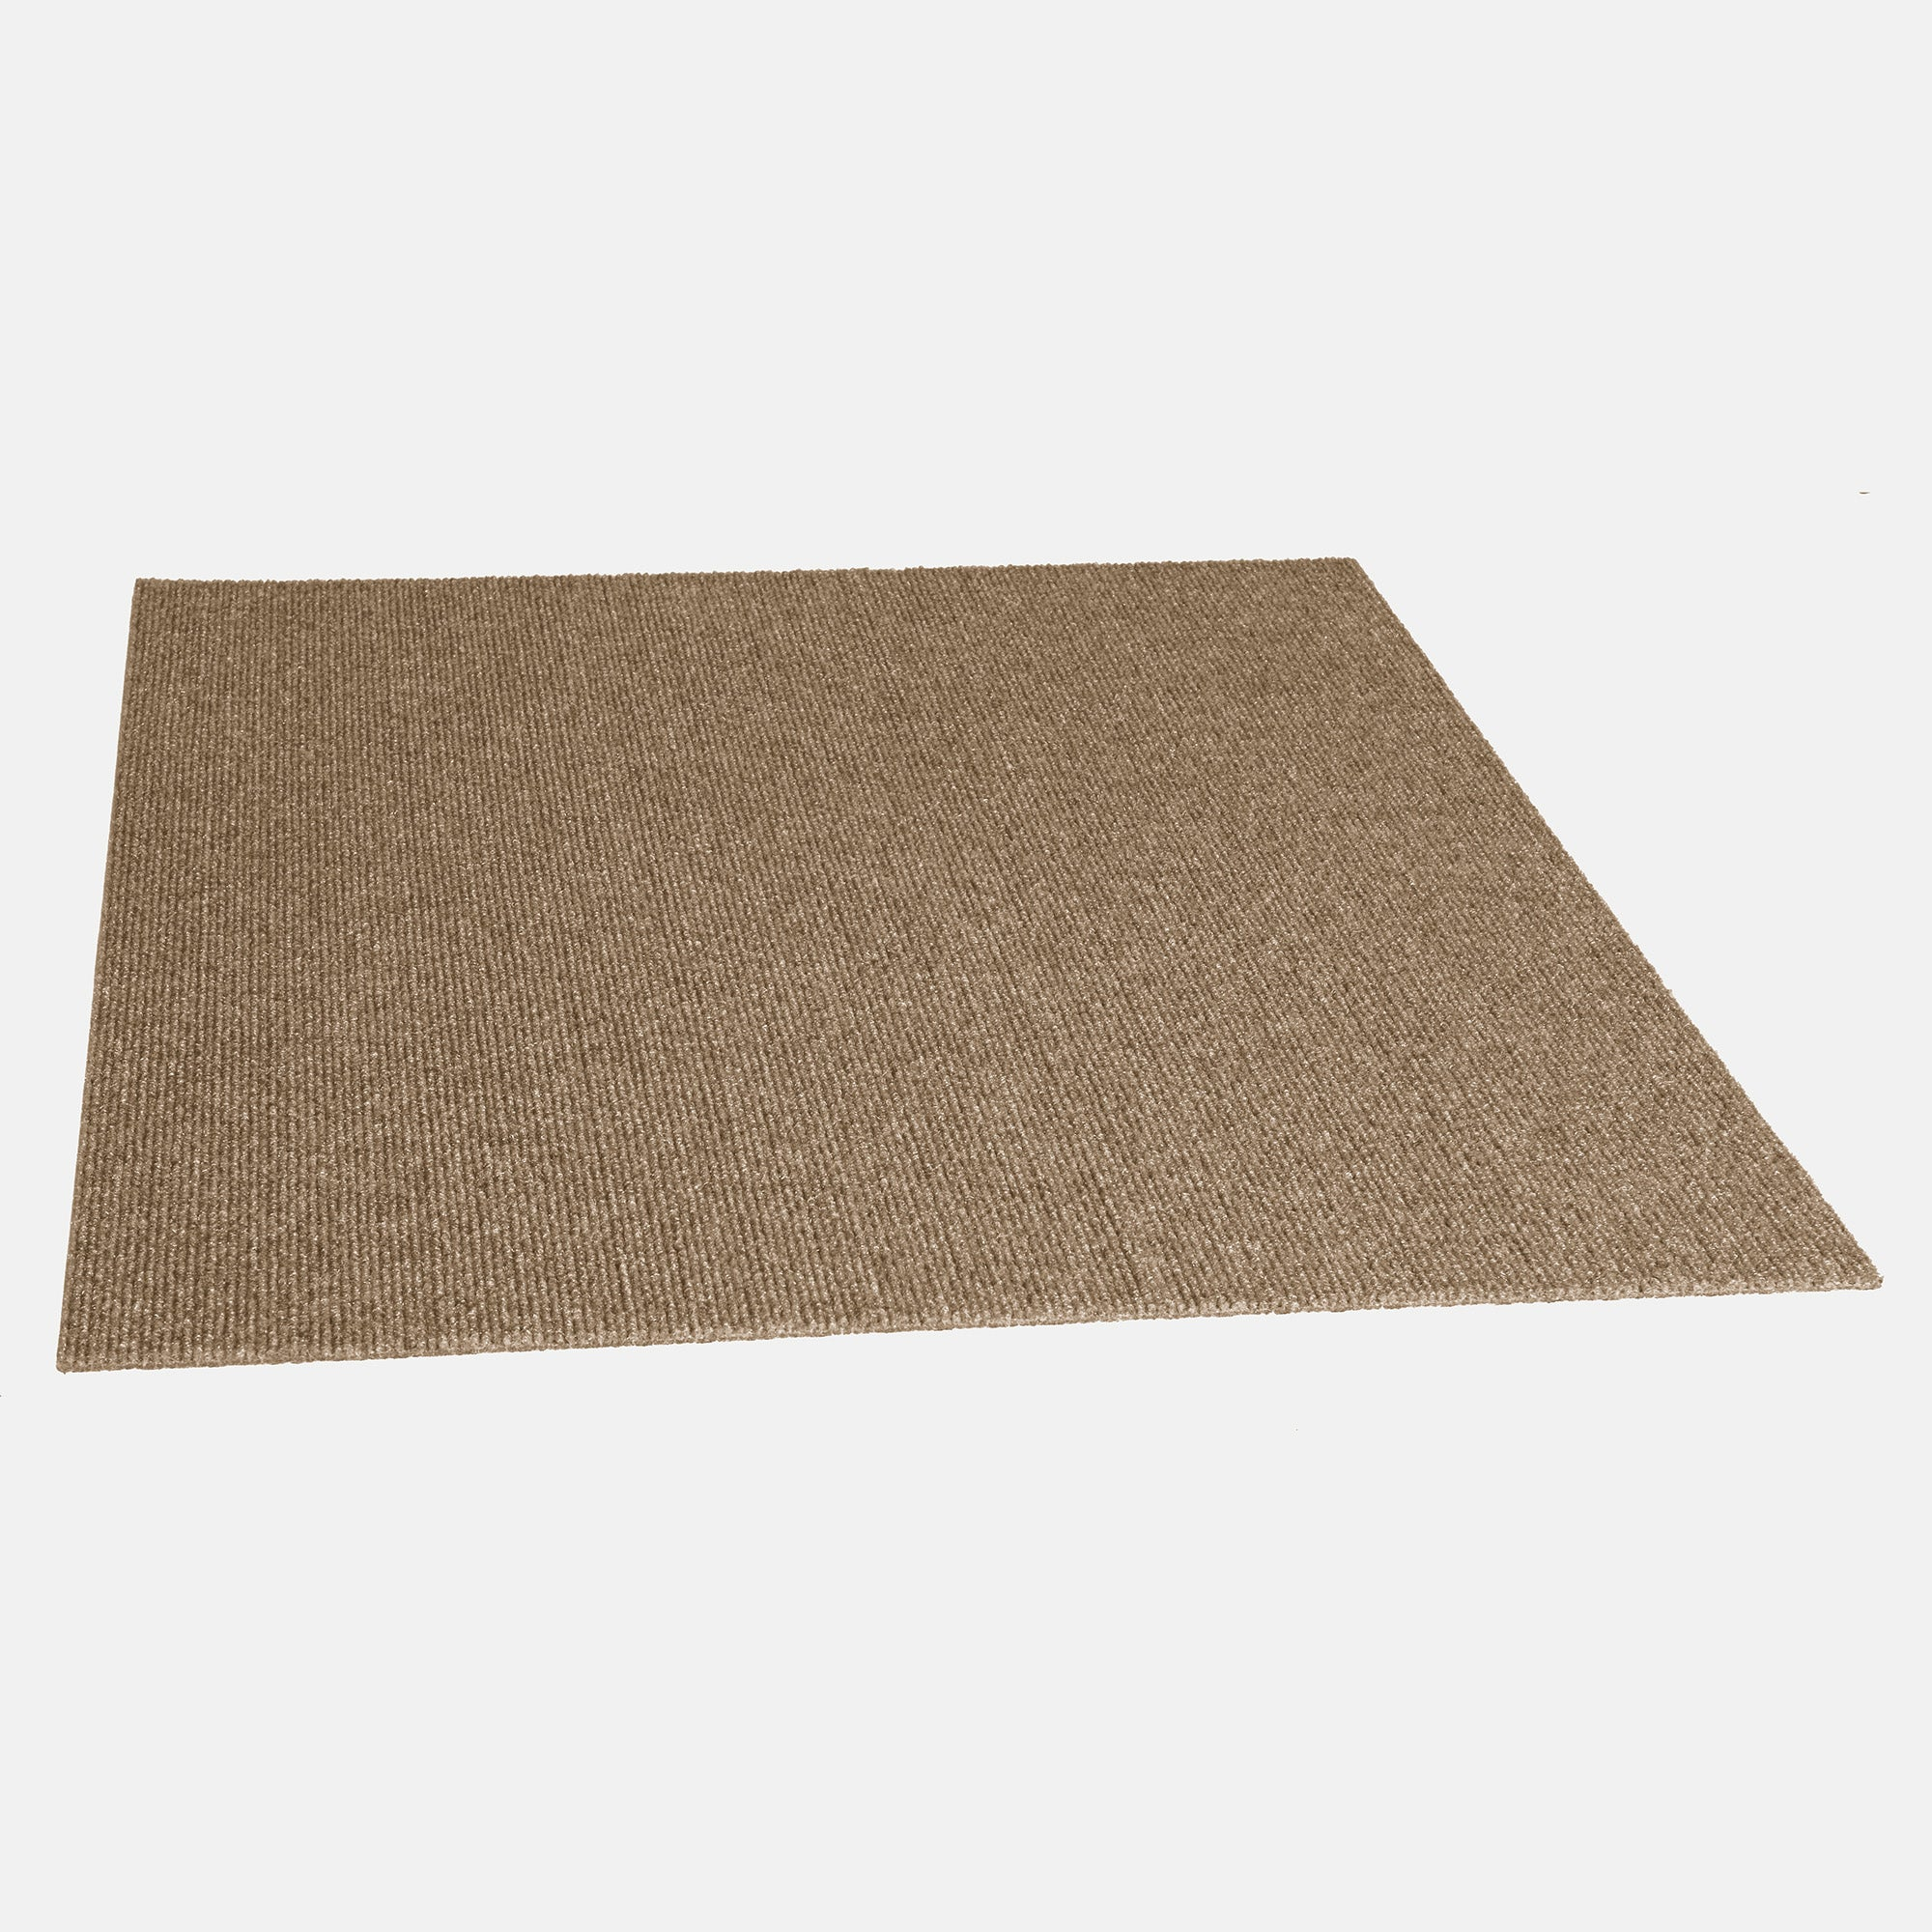 Pioneer 24'' X 24'' Premium Peel And Stick Carpet Tiles (Ivory)